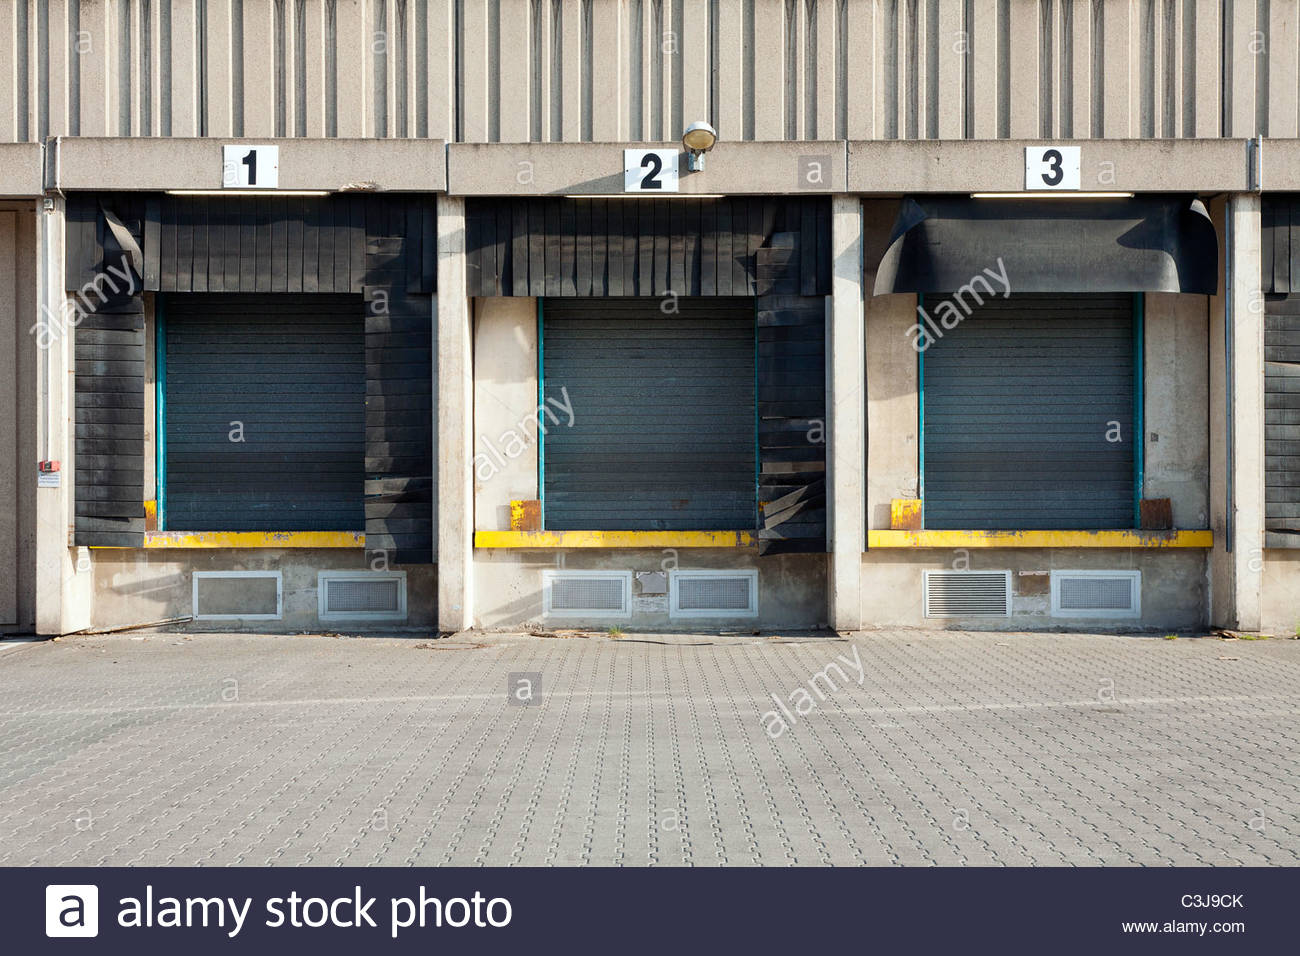 Commercial shipping warehouses and loading docks. Berlin, Germany - Stock Image